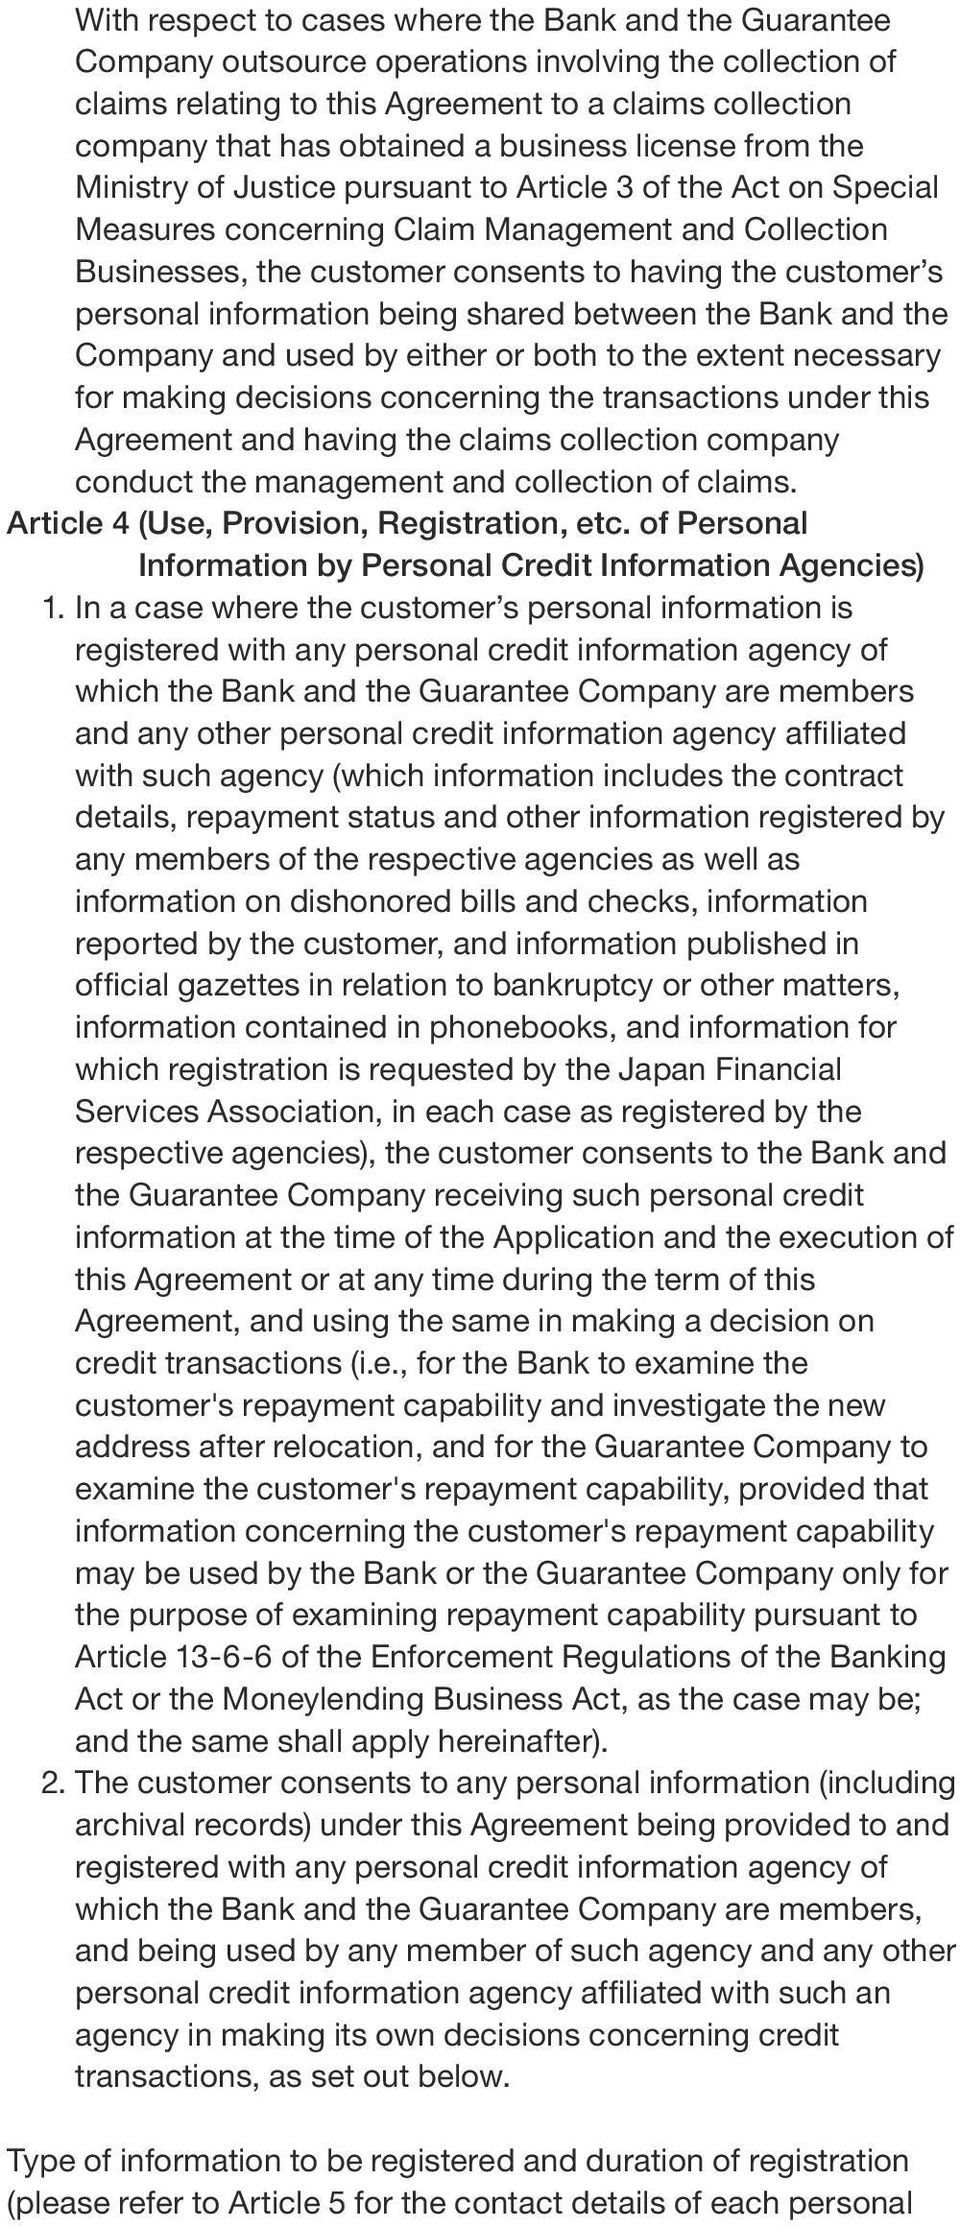 s personal information being shared between the Bank and the Company and used by either or both to the extent necessary for making decisions concerning the transactions under this Agreement and